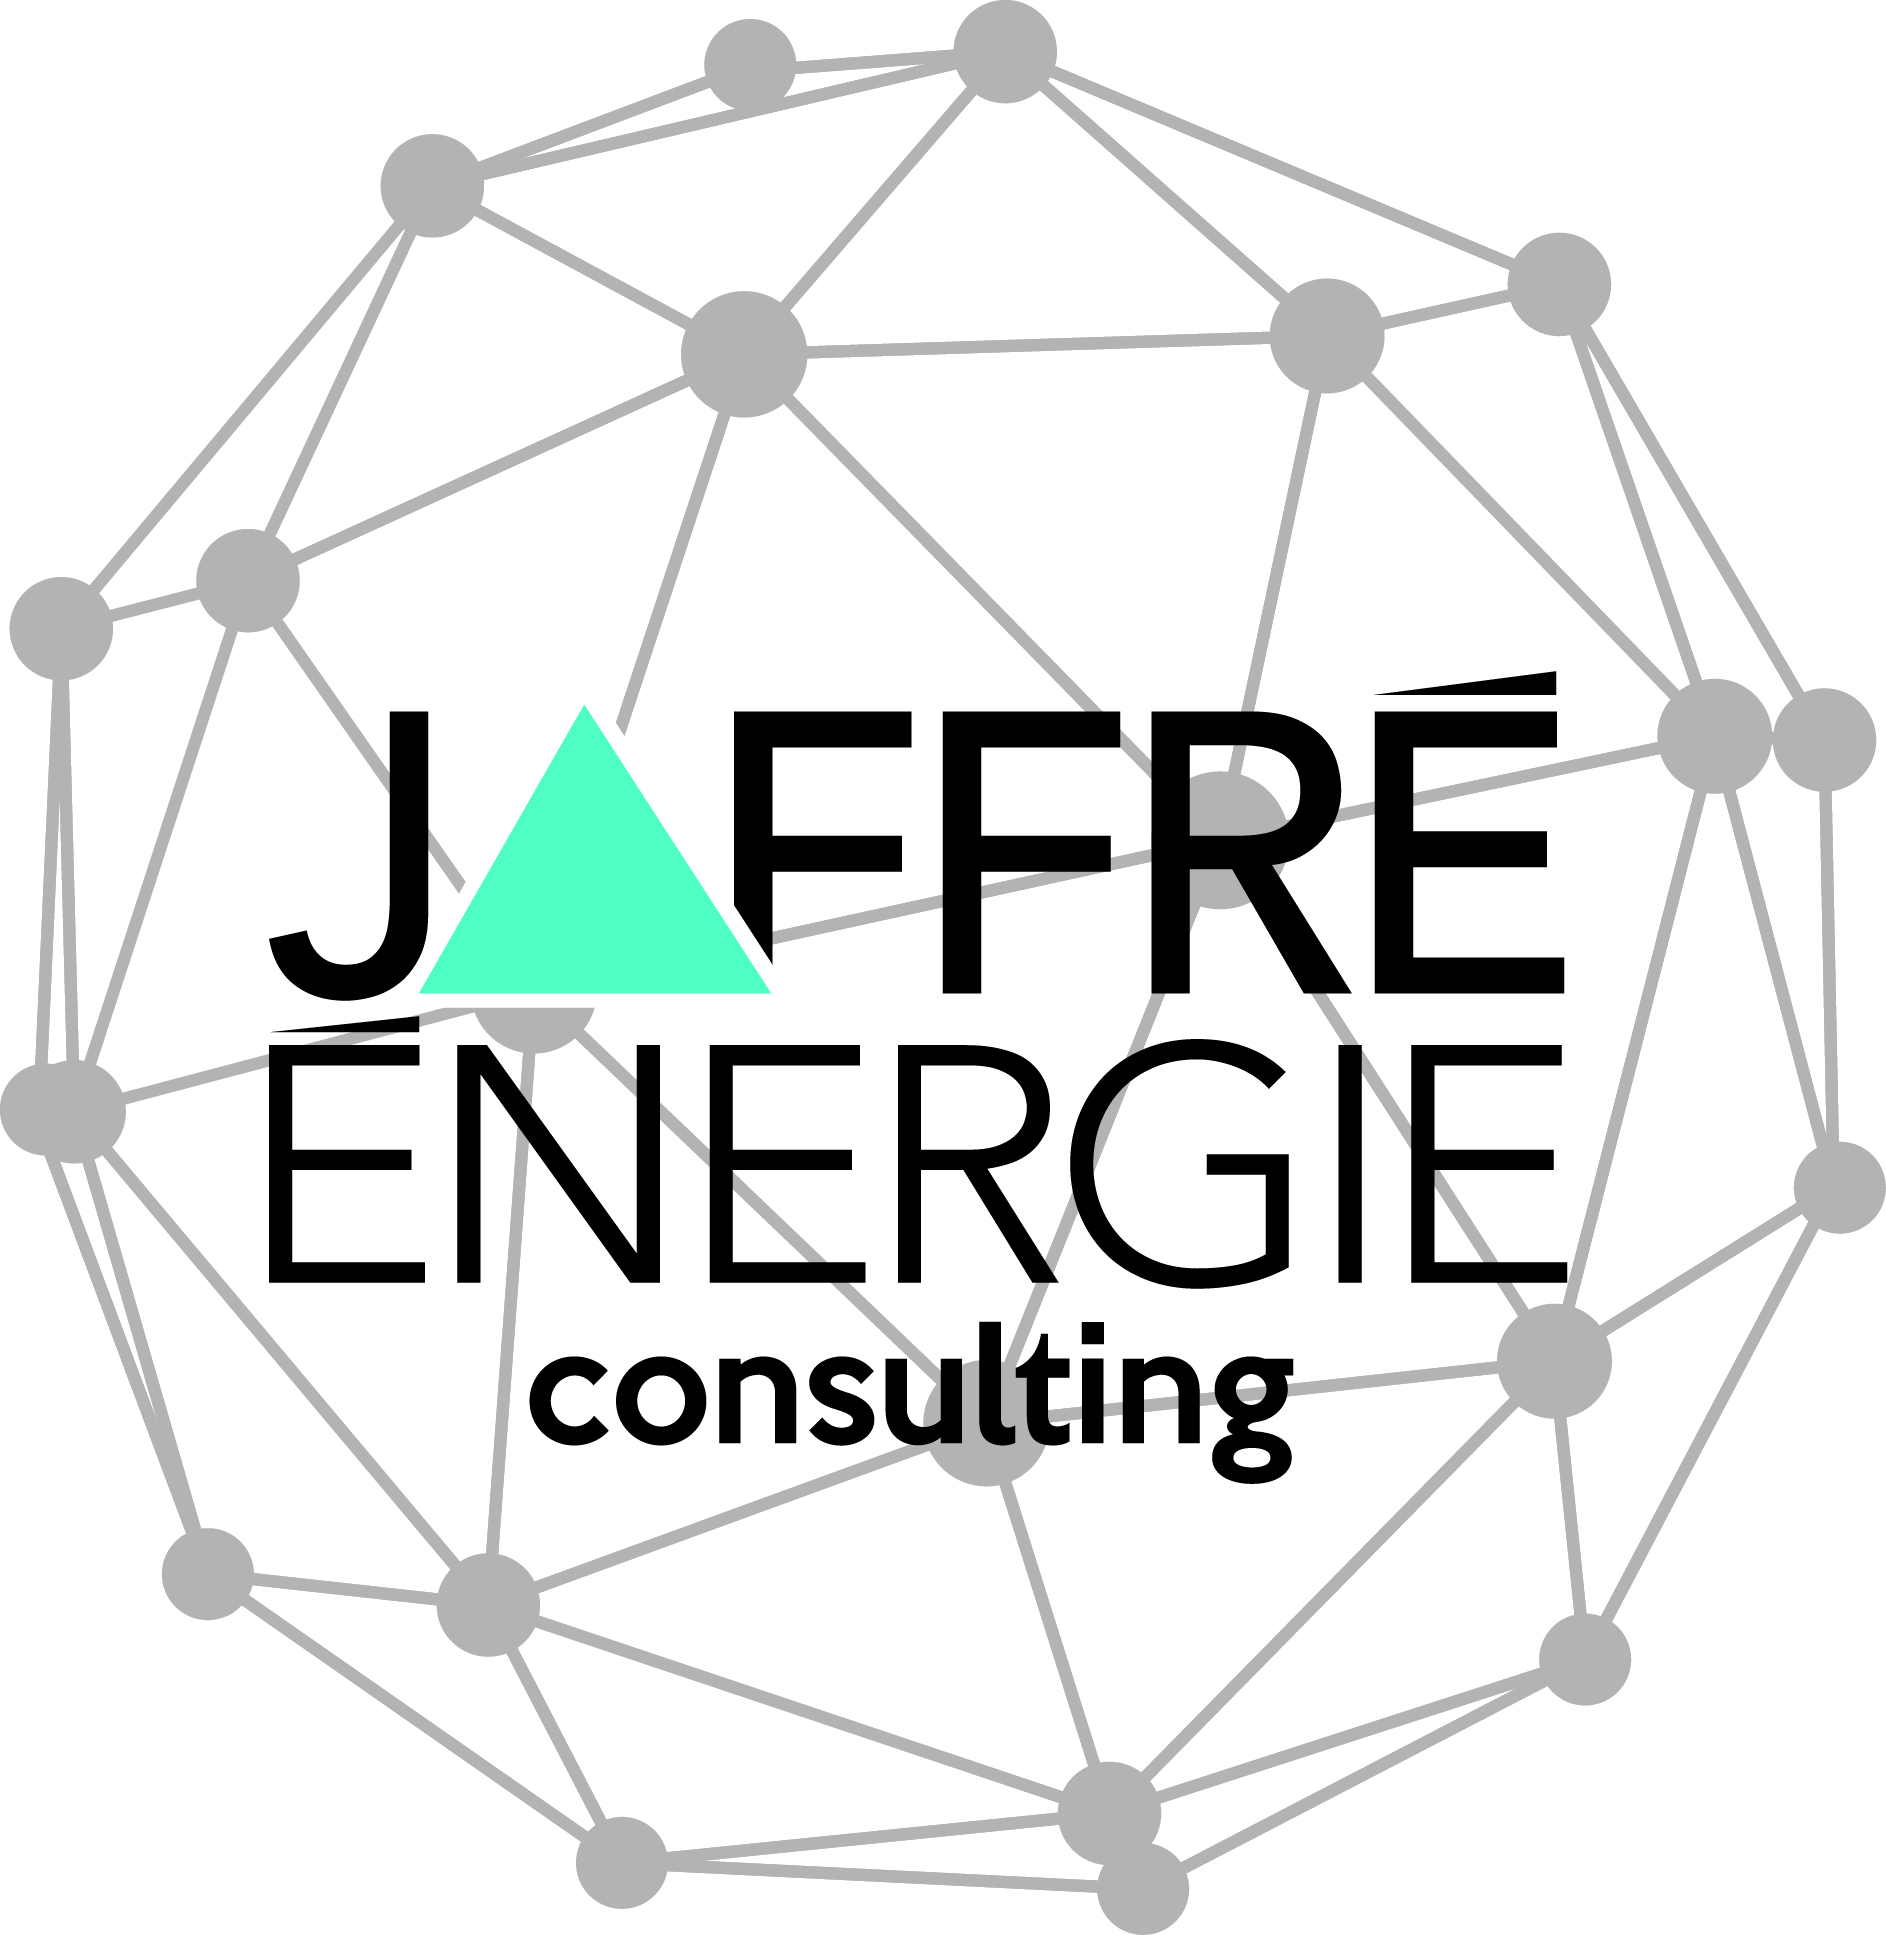 JAFFRE ENERGIE CONSULTING